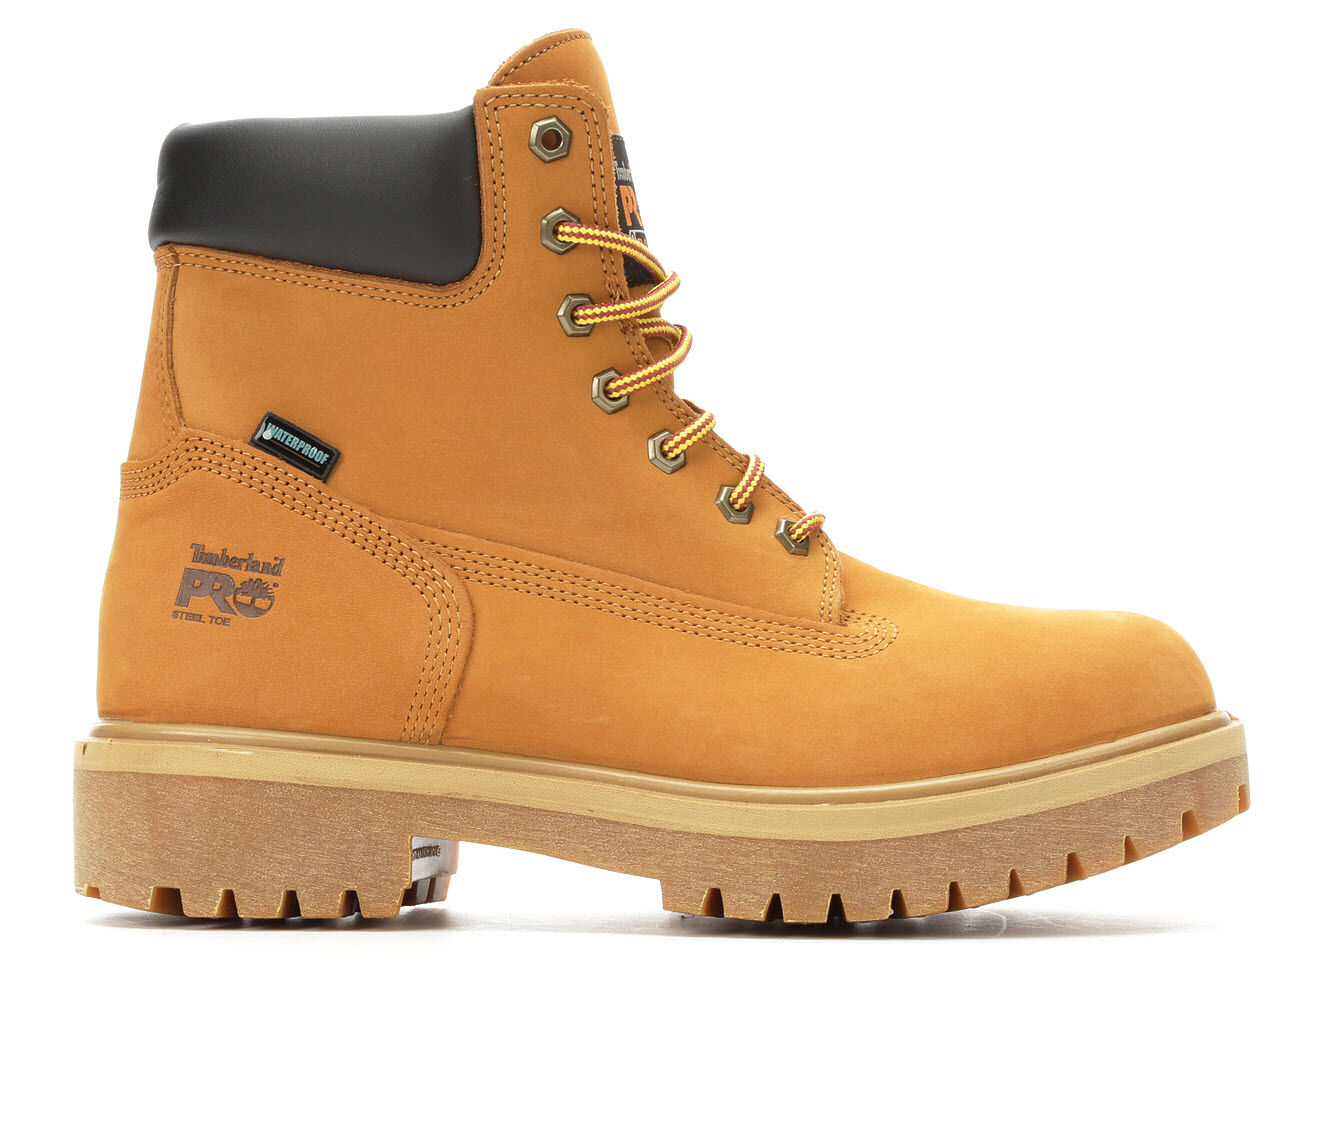 new arrival Men's Timberland Pro Direct Attach 65016 Steel Toe Waterproof Work Boots Wheat